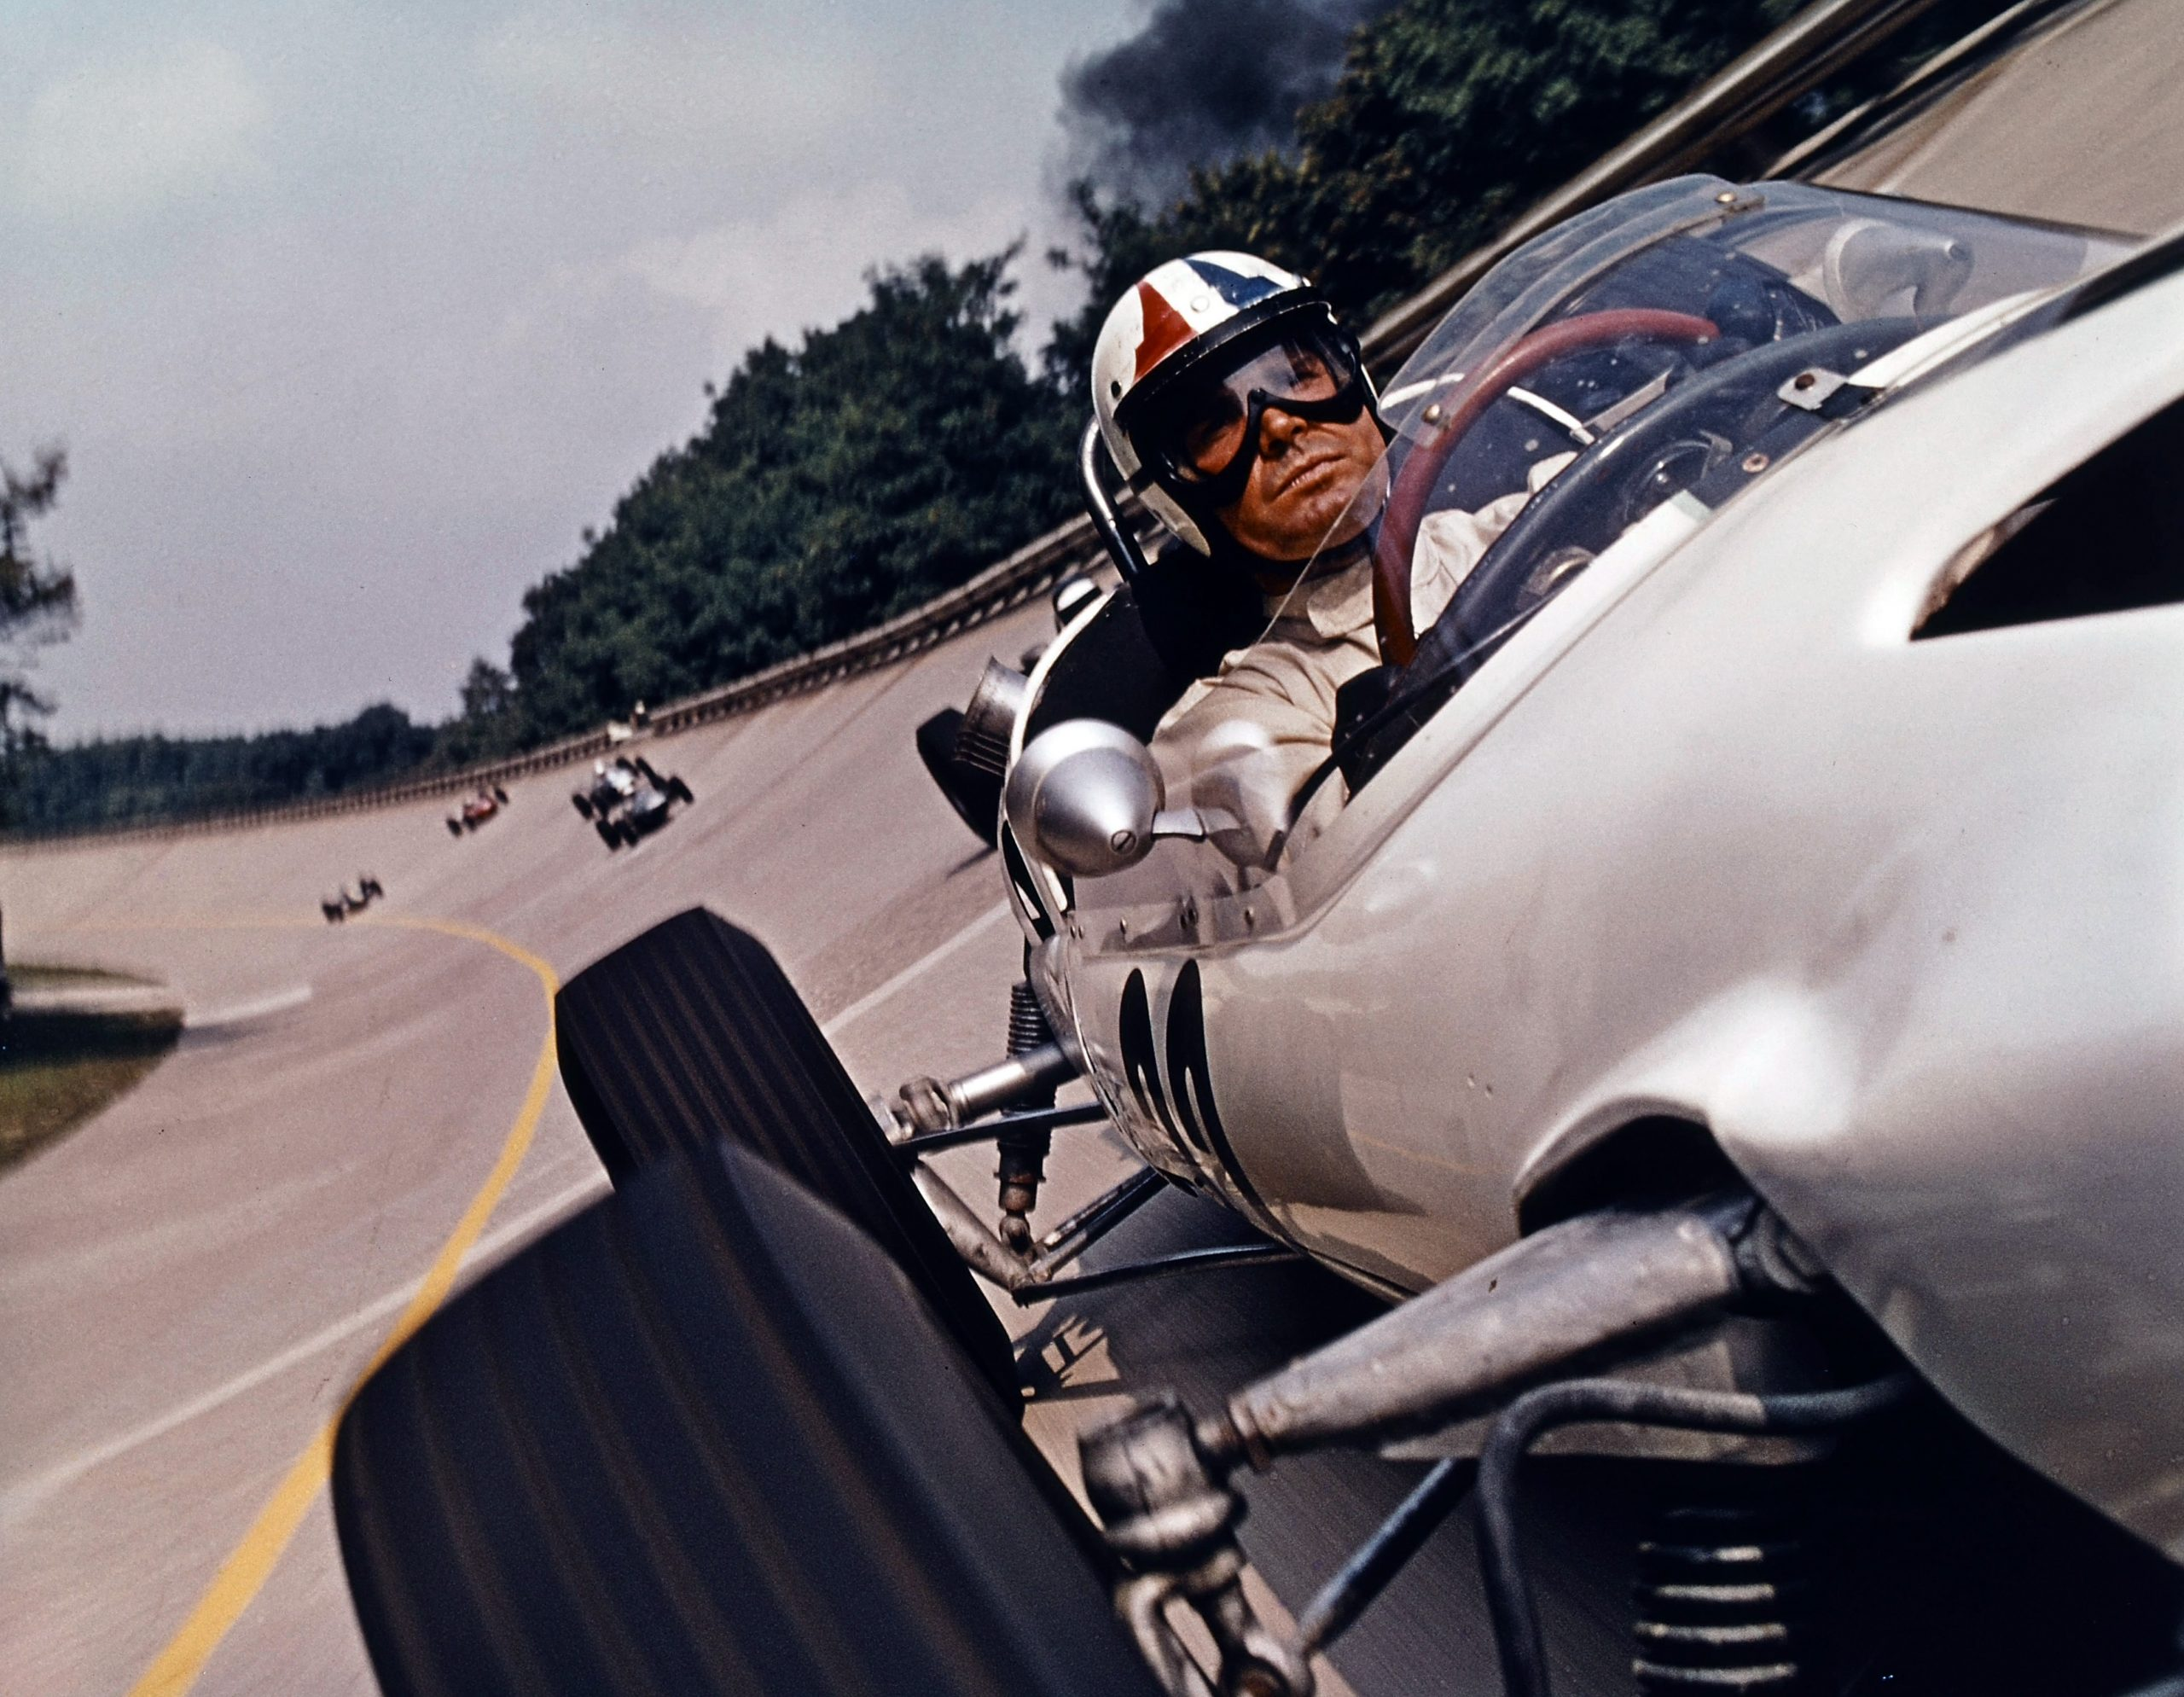 Frankenheimer's Grand Prix still has you on the edge of your seat after 55 years